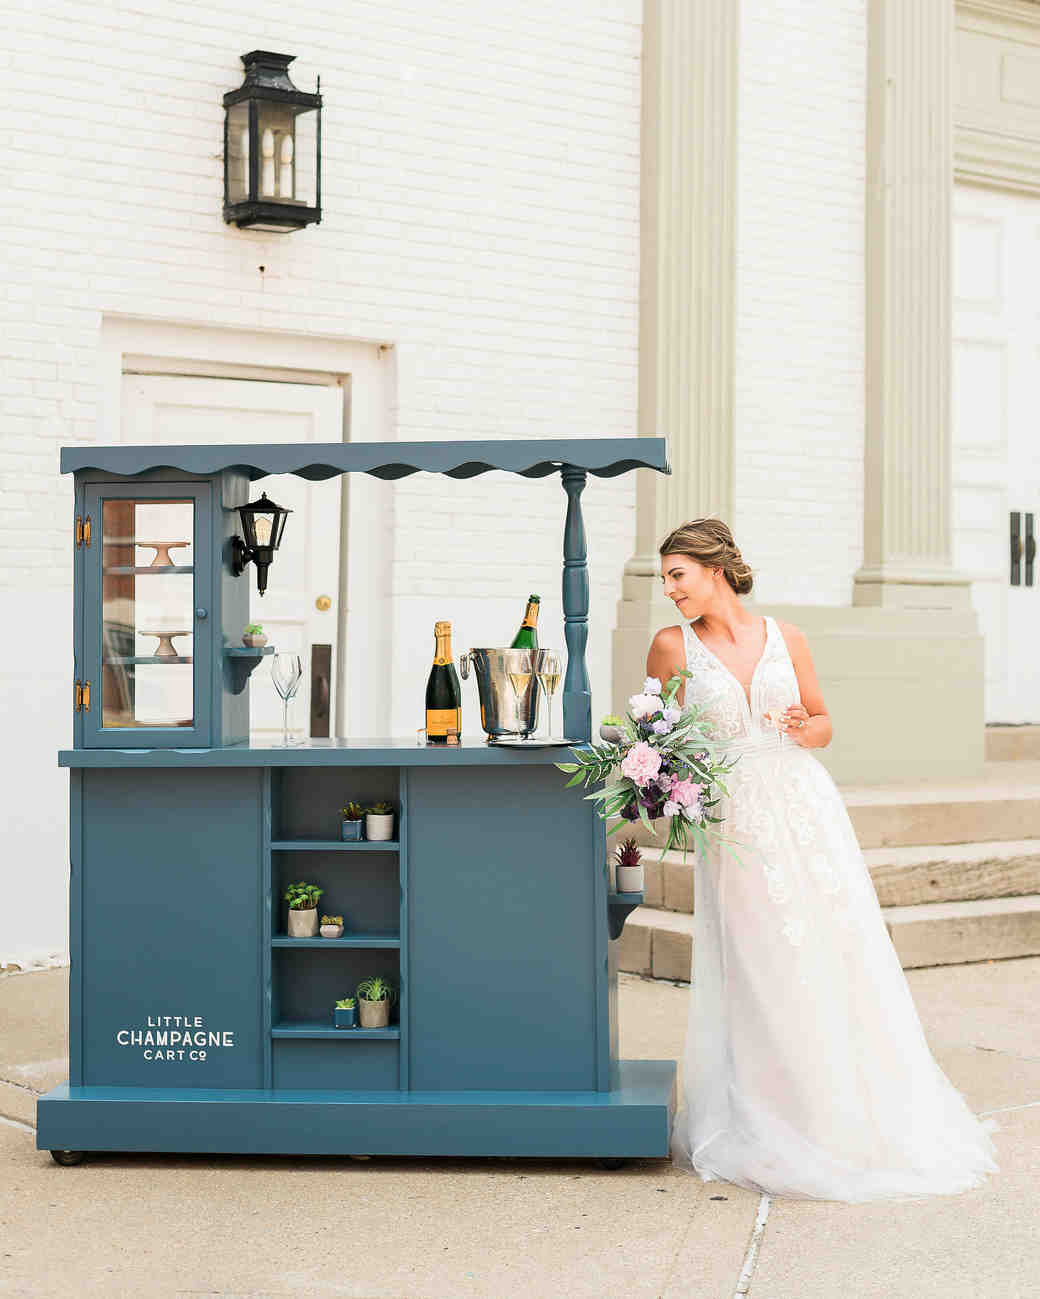 little champagne cart bride mobile cocktails